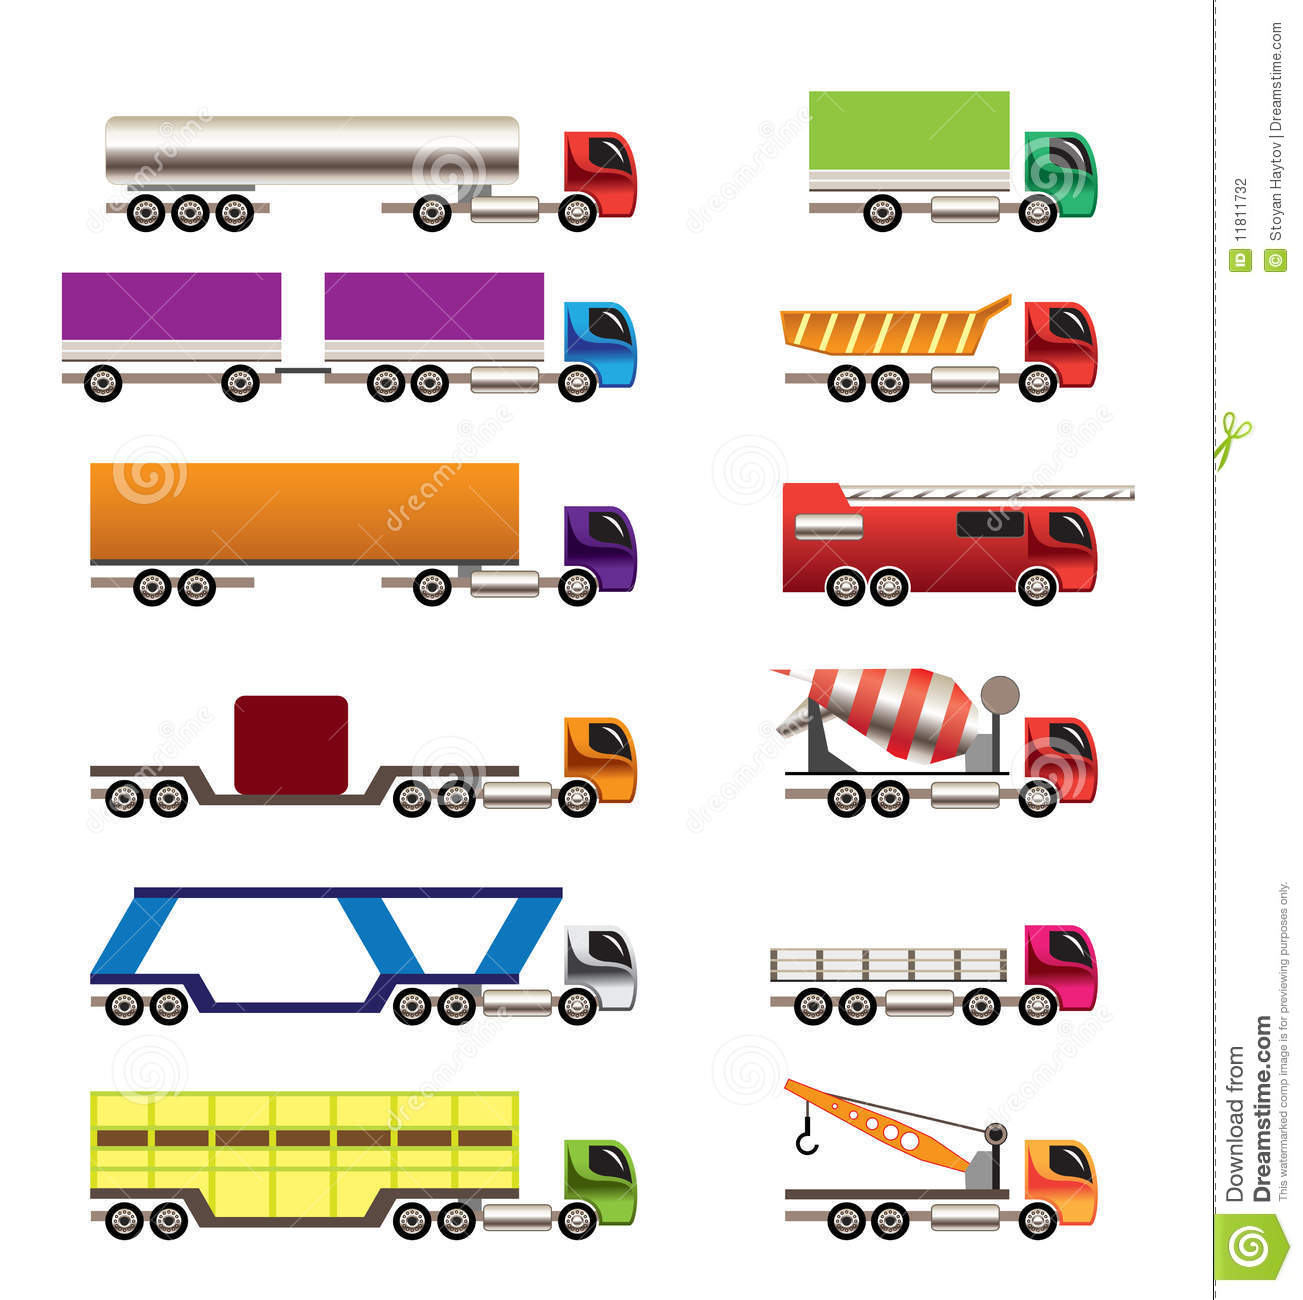 different types of trucks and lorries icons stock vector illustration of tipper race 11811732. Black Bedroom Furniture Sets. Home Design Ideas